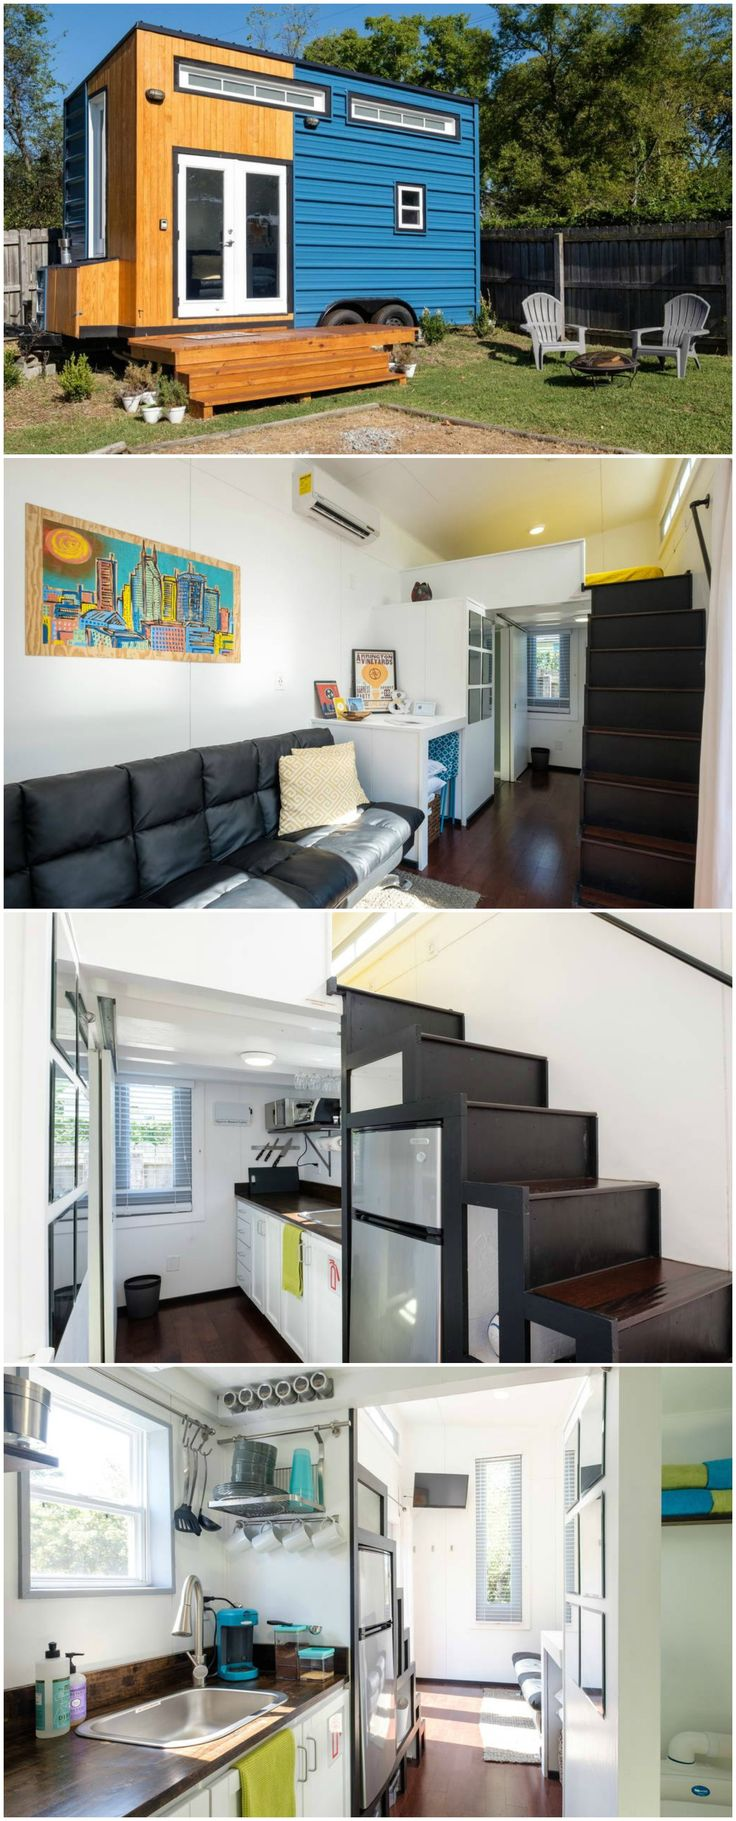 TheNashville Tiny Househas a modern, minimalist design with clean lines, white space, and high ceilings. The 185-sq.ft. custom-built house is sustainably made from recycled wood on a restored trailer.